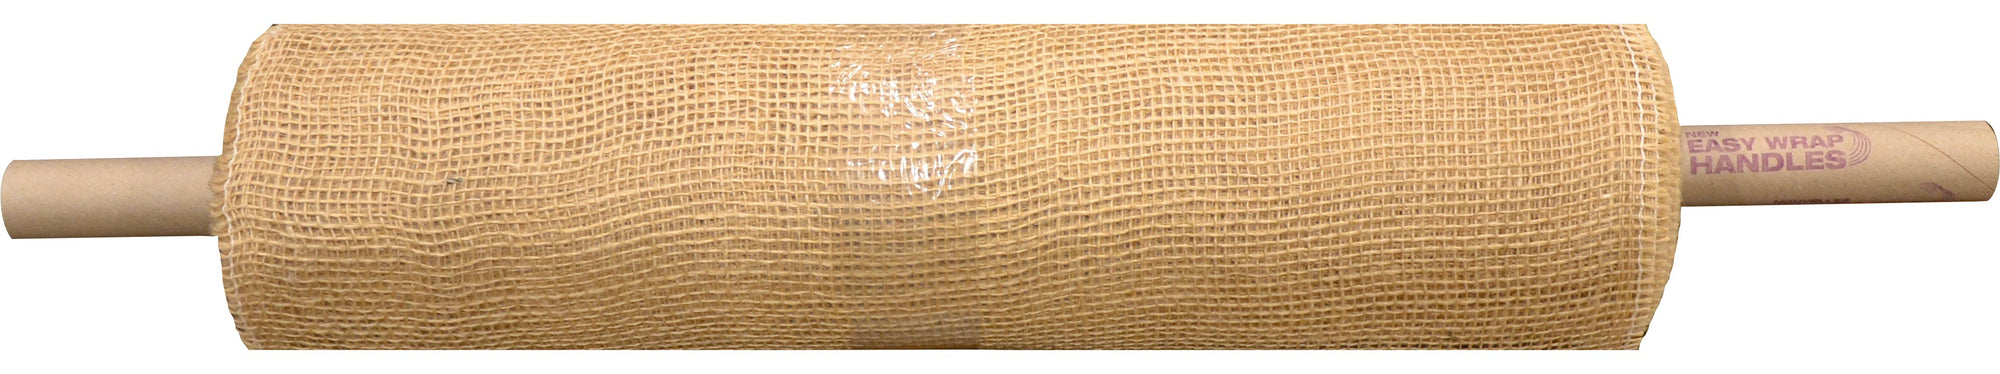 "Burlap on a Roll with Handles - 20"" x 50'"